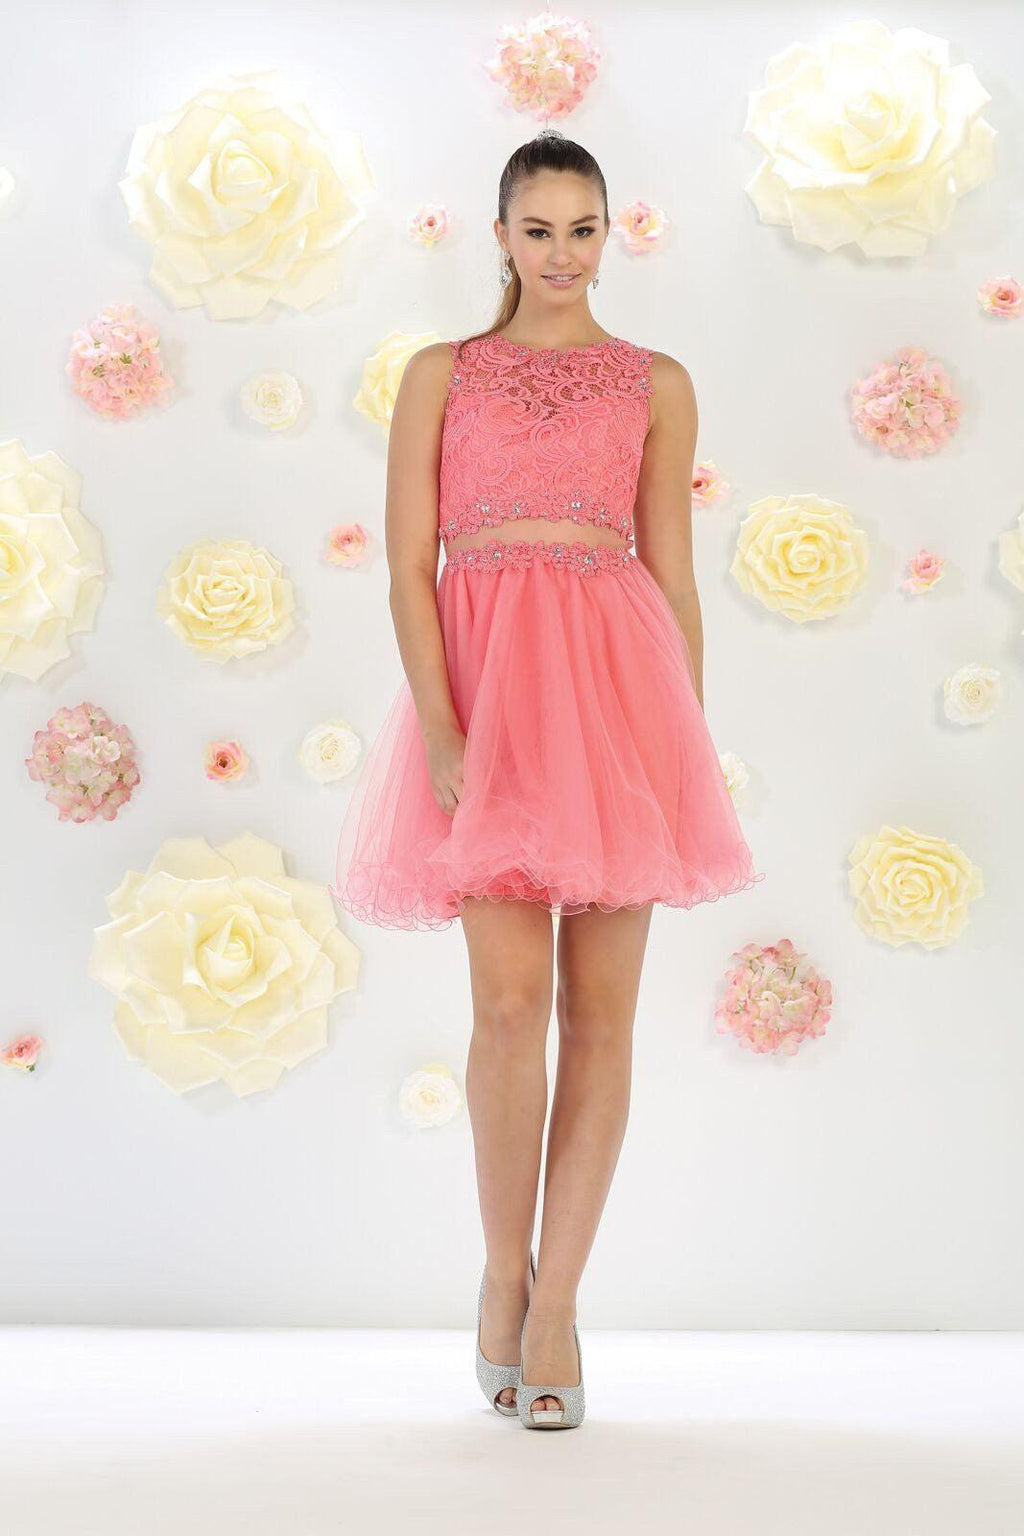 Short Prom Formal Homecoming Dress - The Dress Outlet Coral May Queen